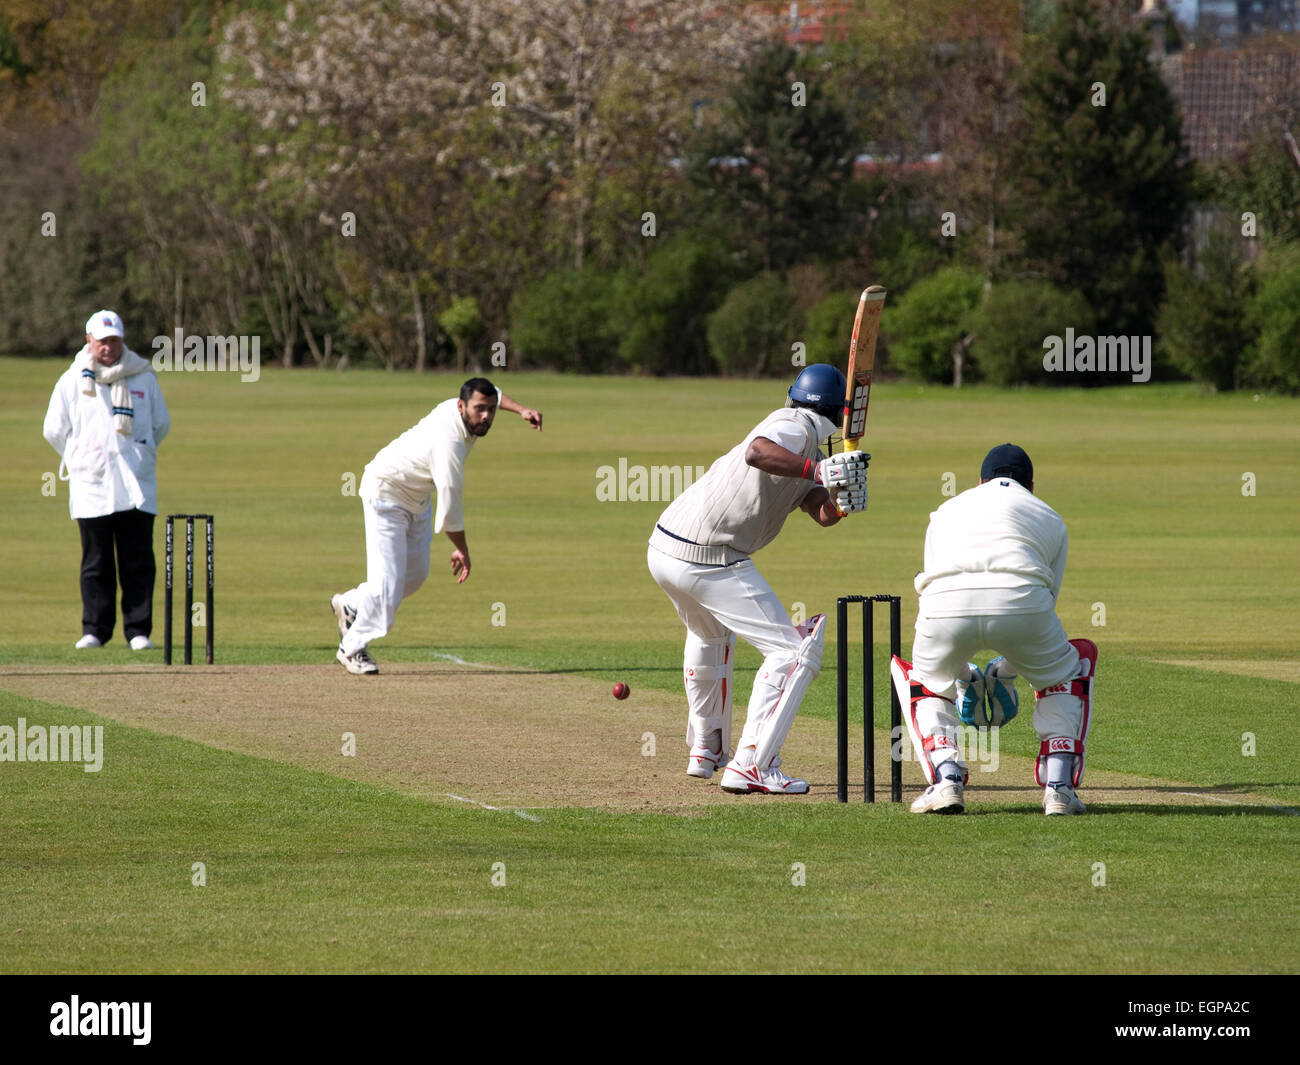 Playing cricket at a local league match - Stock Image